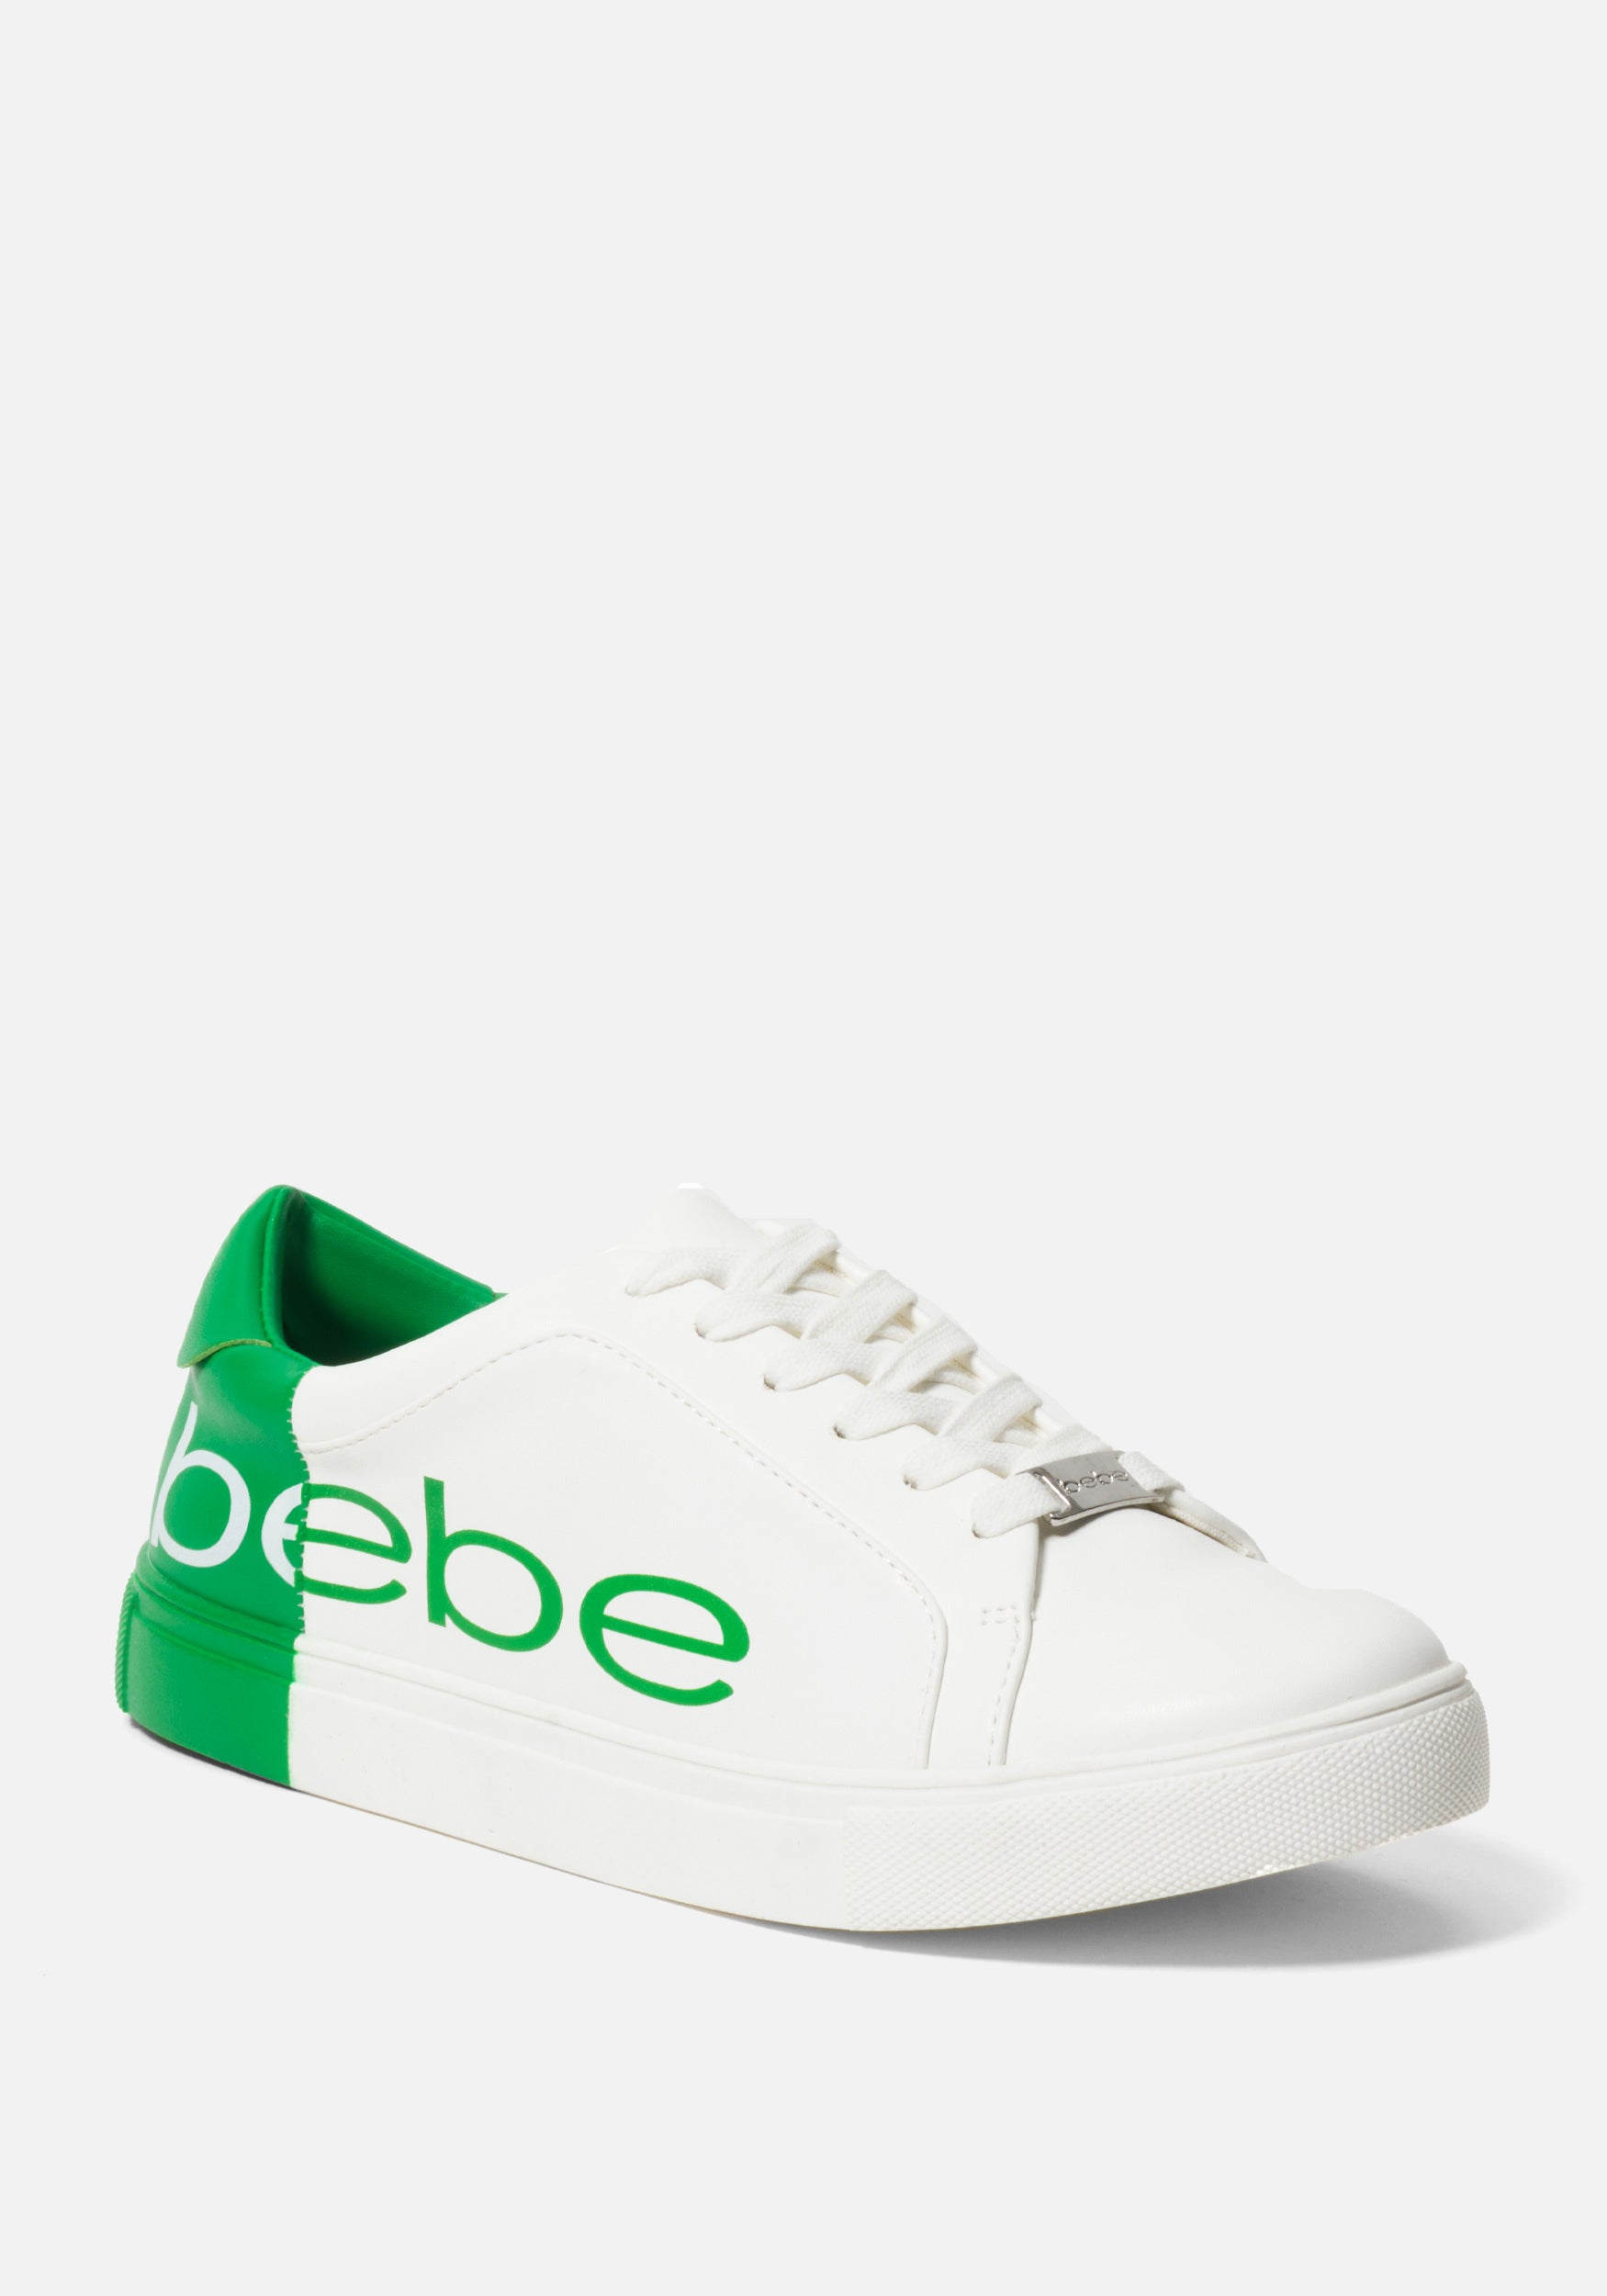 Women's Charley Bebe Logo Sneakers, Size 6 in WHITE/GREEN Synthetic